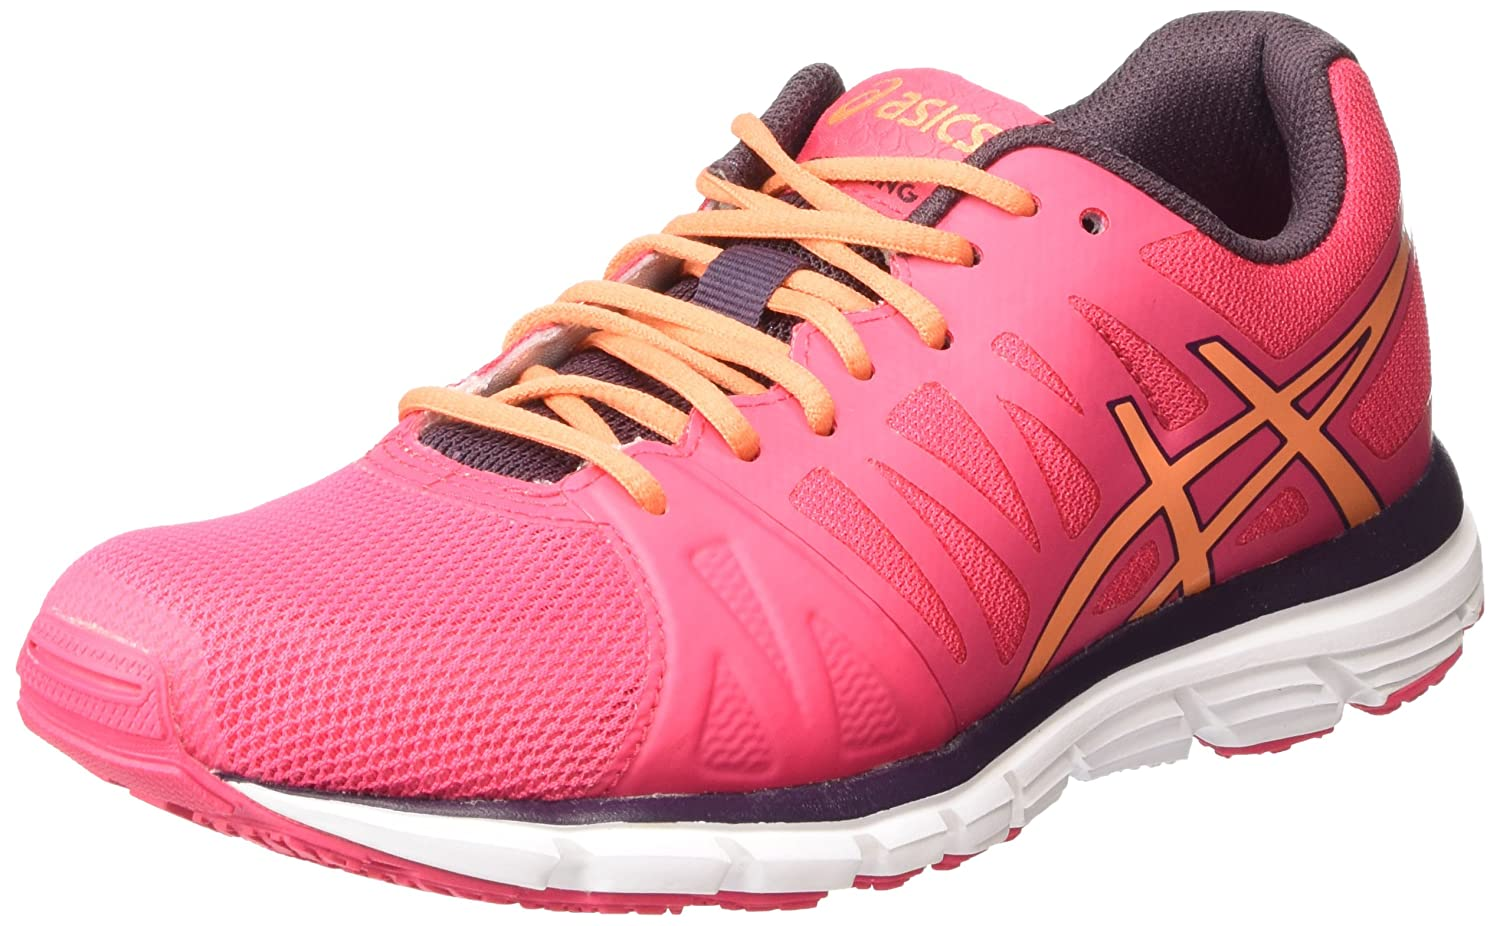 Asics Gel Elate TR Scarpe Sportive Outdoor Donna Rosa